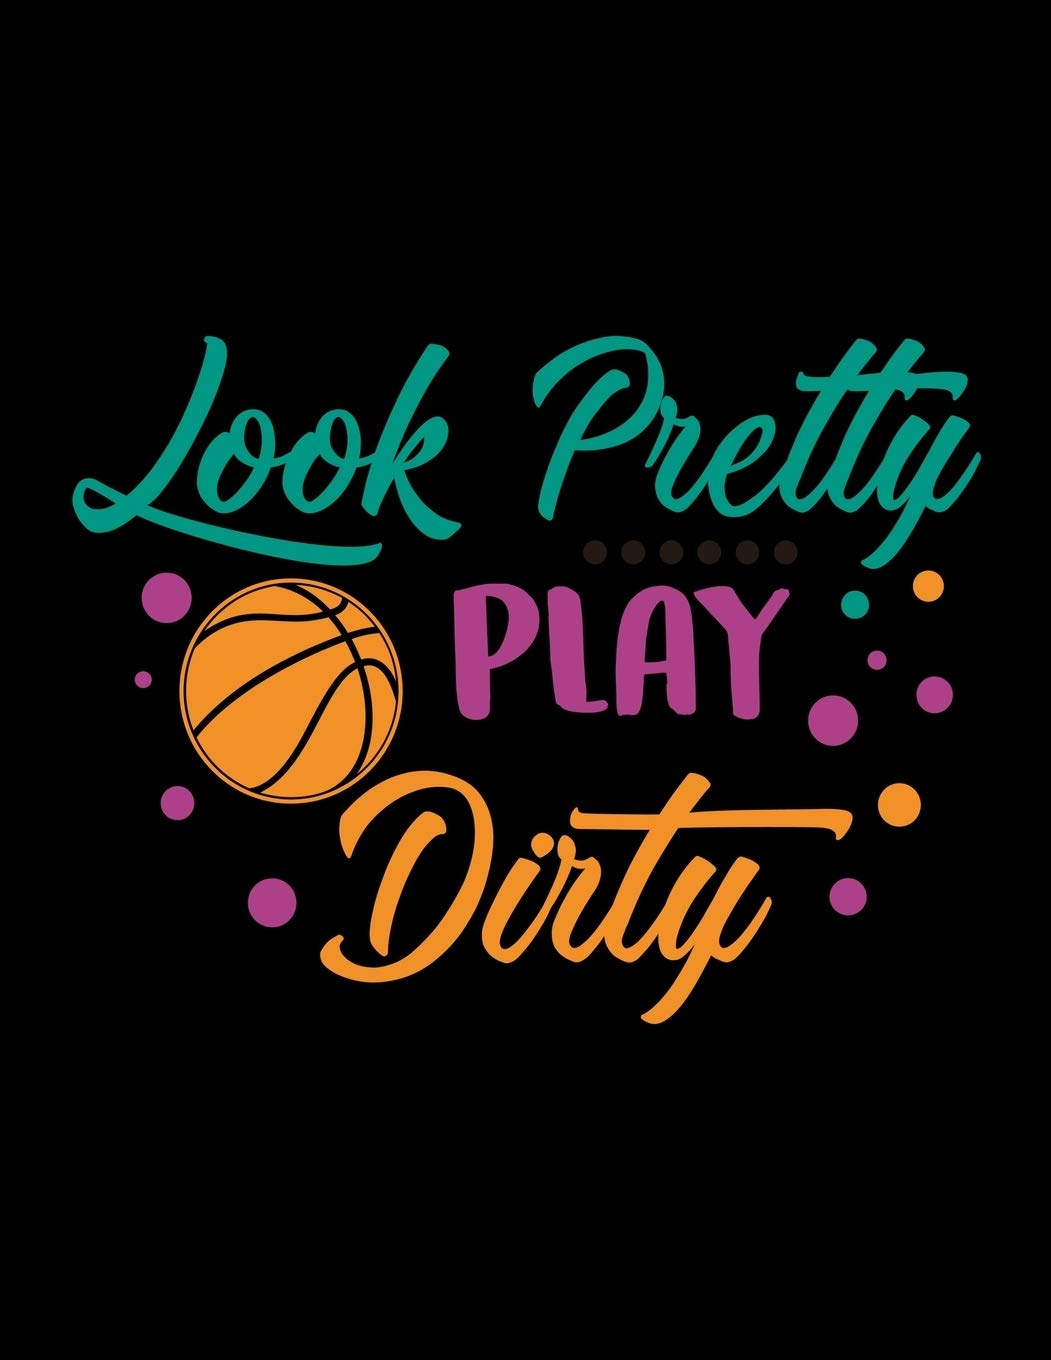 Look Pretty Play Dirty Youth Girls Basketball Coach Planner Blank Play Sheets Game Schedule And Roster Cld Coach Game Planners 9781081023461 Amazon Com Books